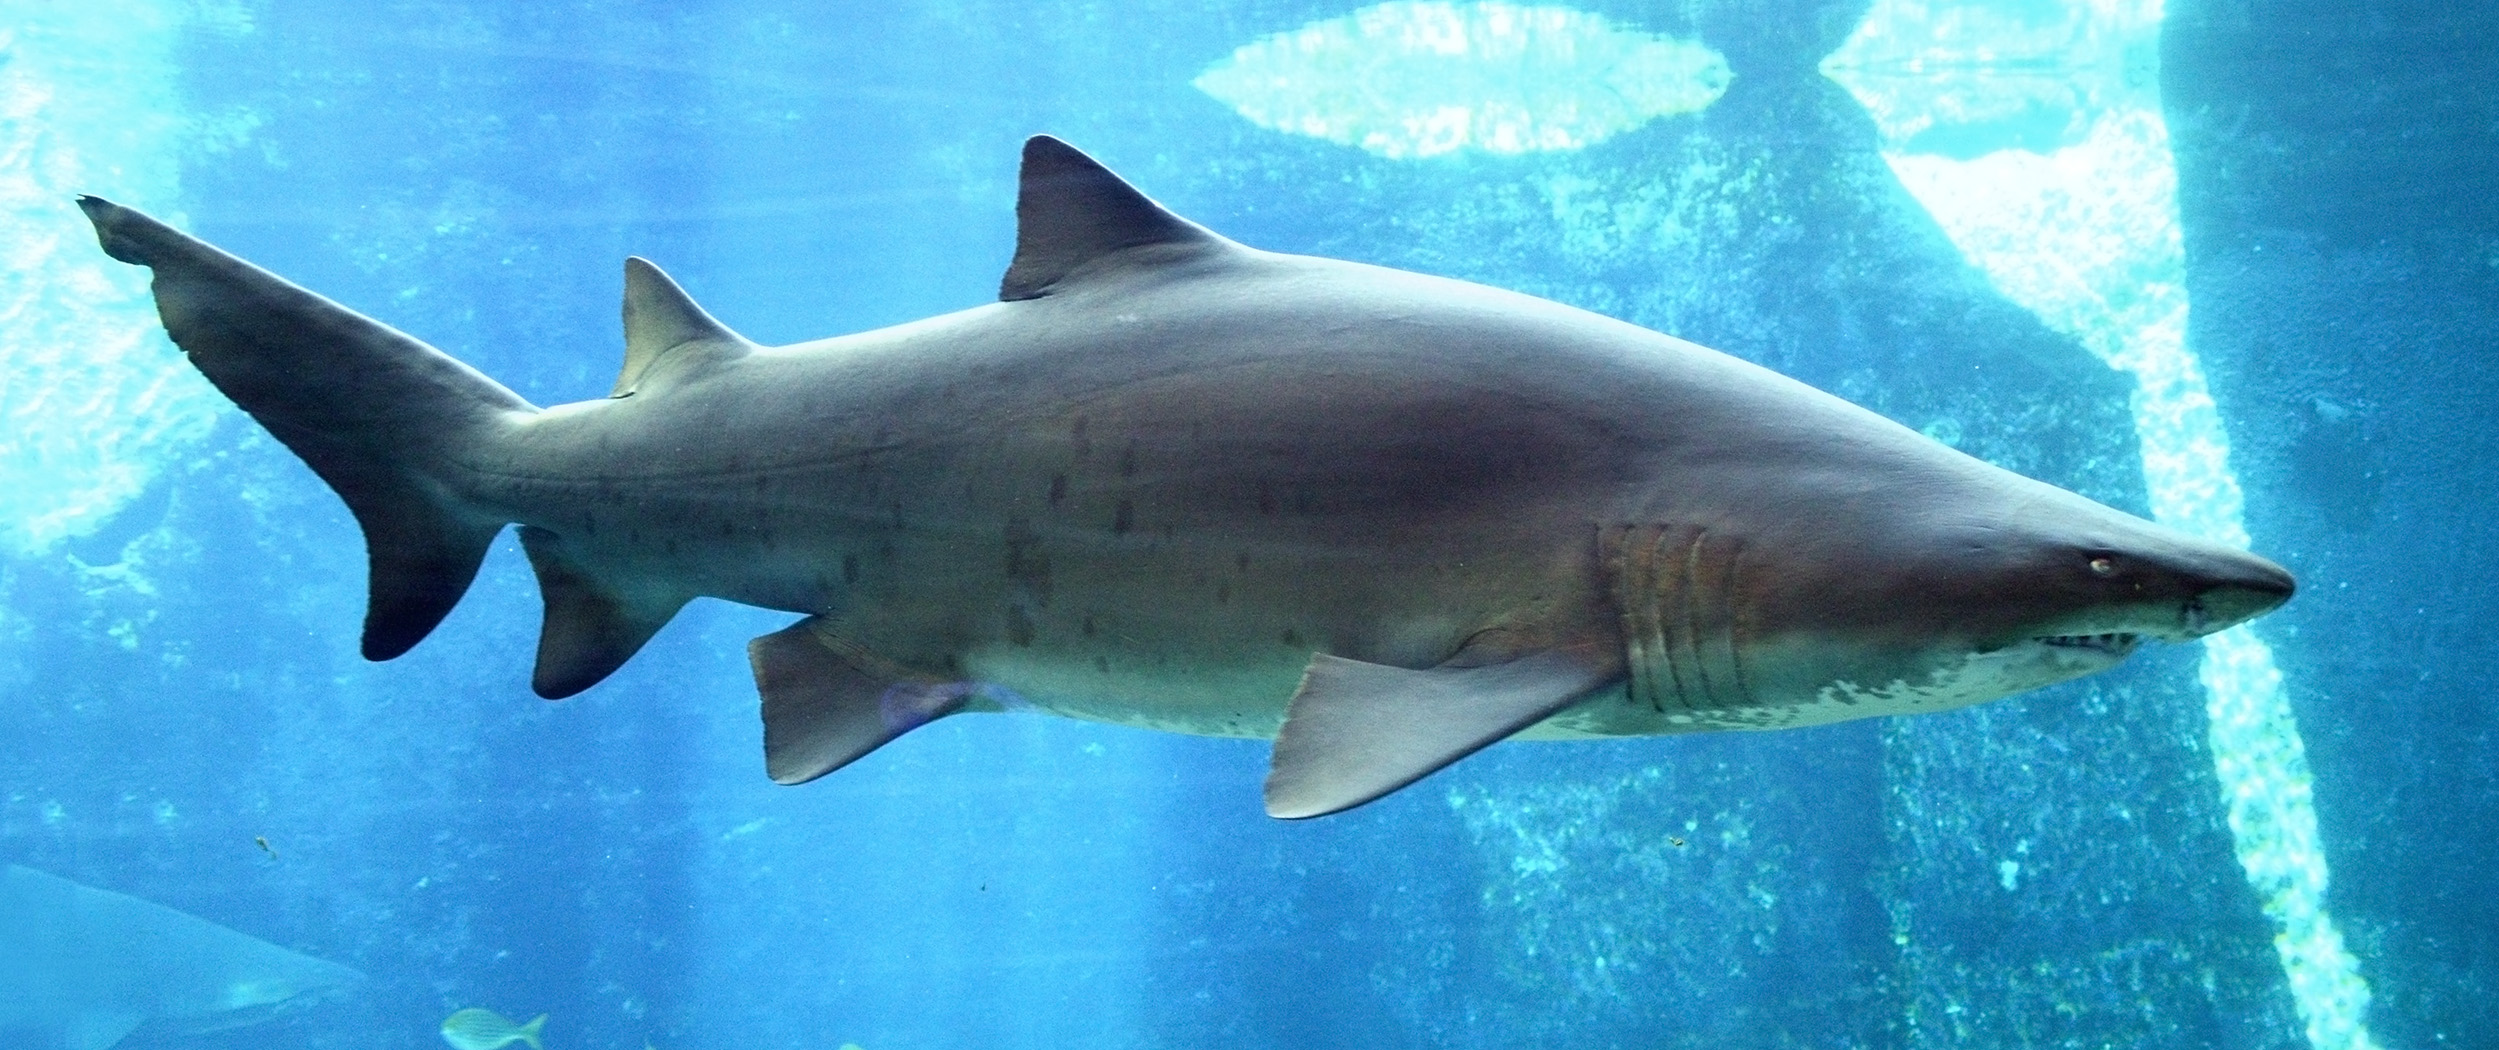 Sand tiger wallpaper